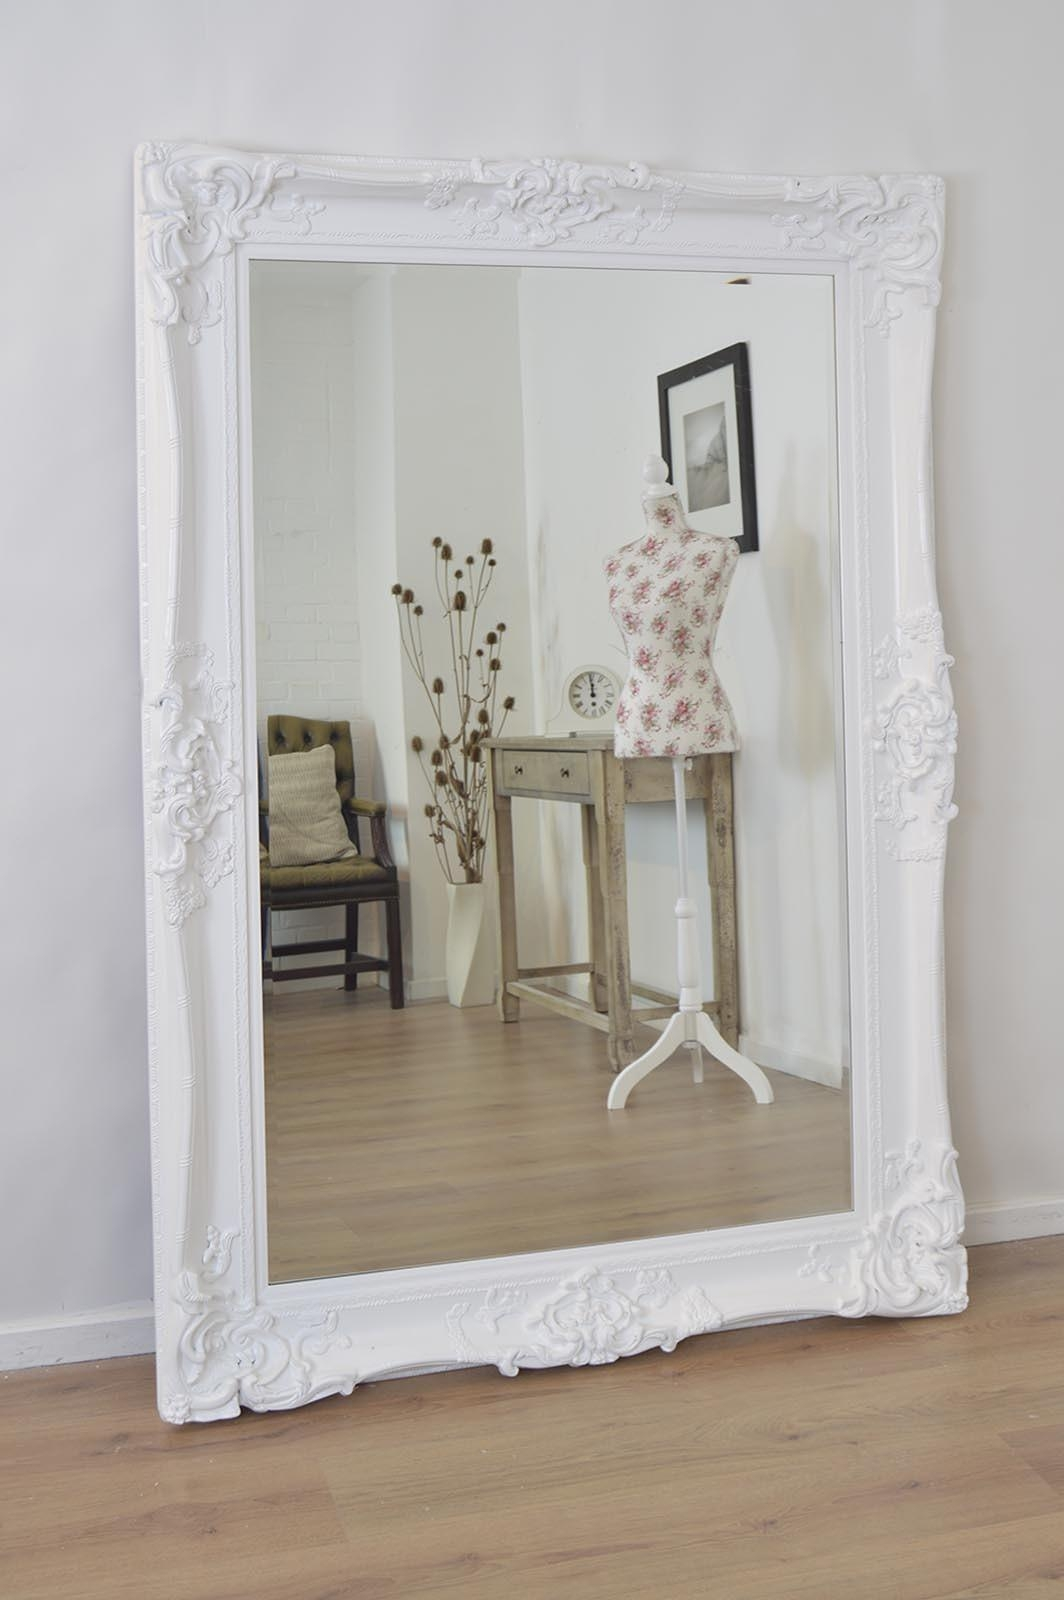 Shabby Chic Mirror Large – White Distressed Shabby Chic Mirror With White Distressed Mirror Shabby Chic (View 9 of 20)